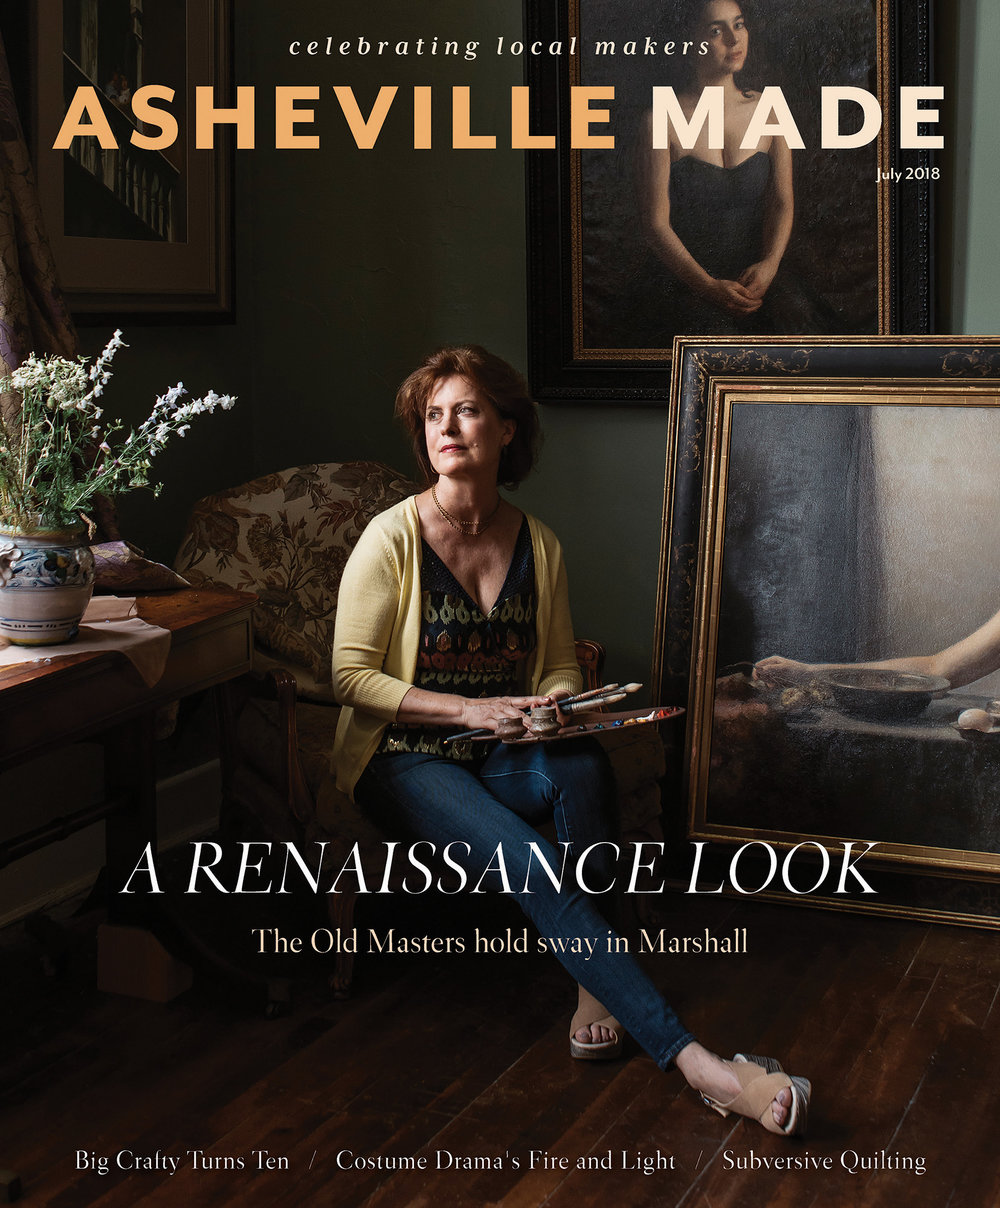 Michele Jim Ostland Jack Sorokin Flame Marshall asheville Photographer Editoral commercial Portrait Artist Painter Dramatic Enviromental People For hire Magazine Cover Asheville Made July 2018 issue Photo